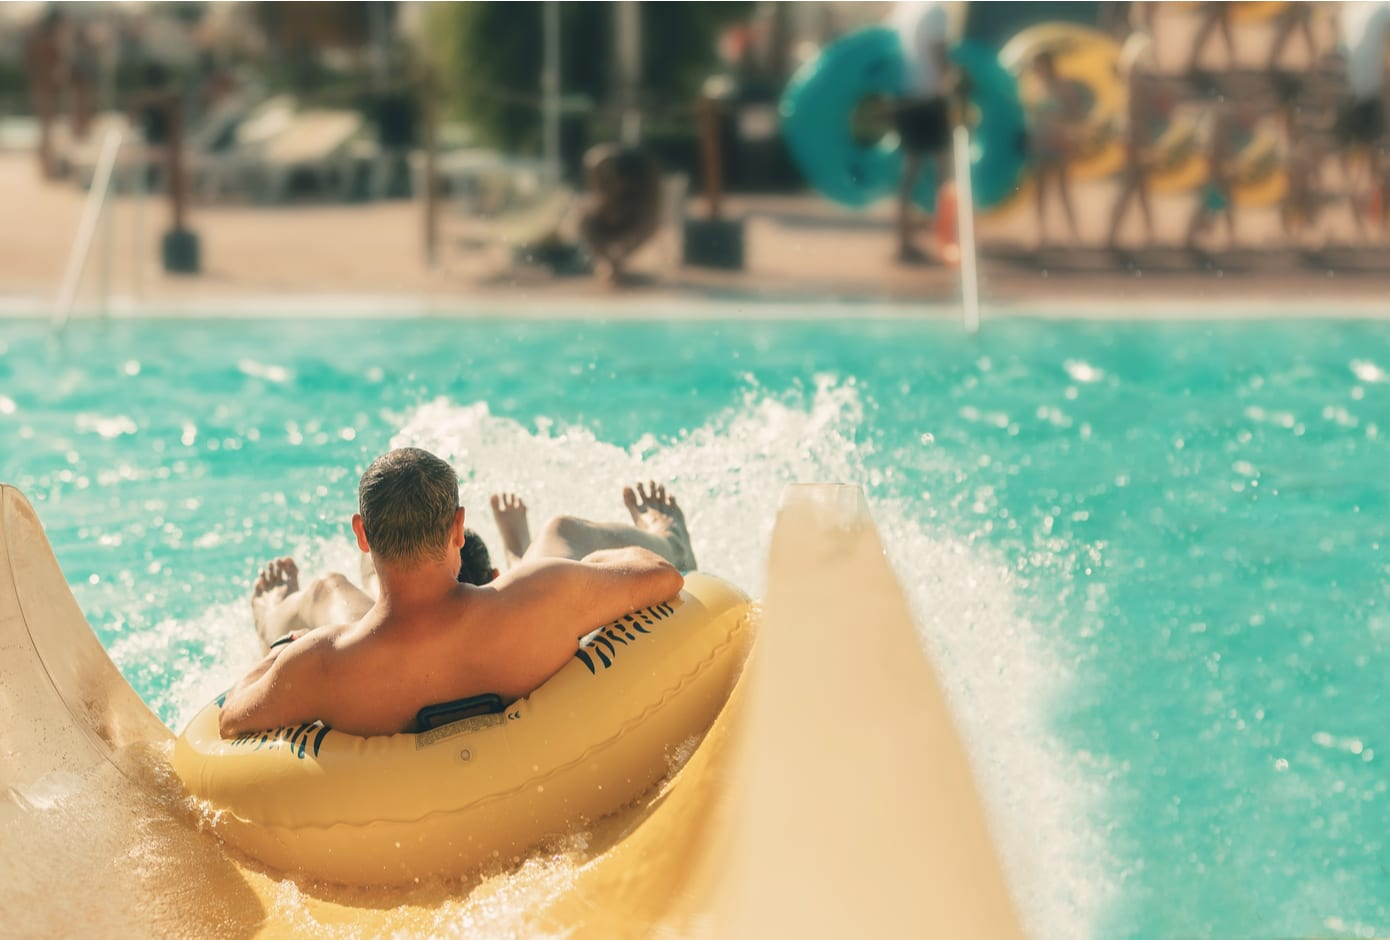 Two boys at a water slide.